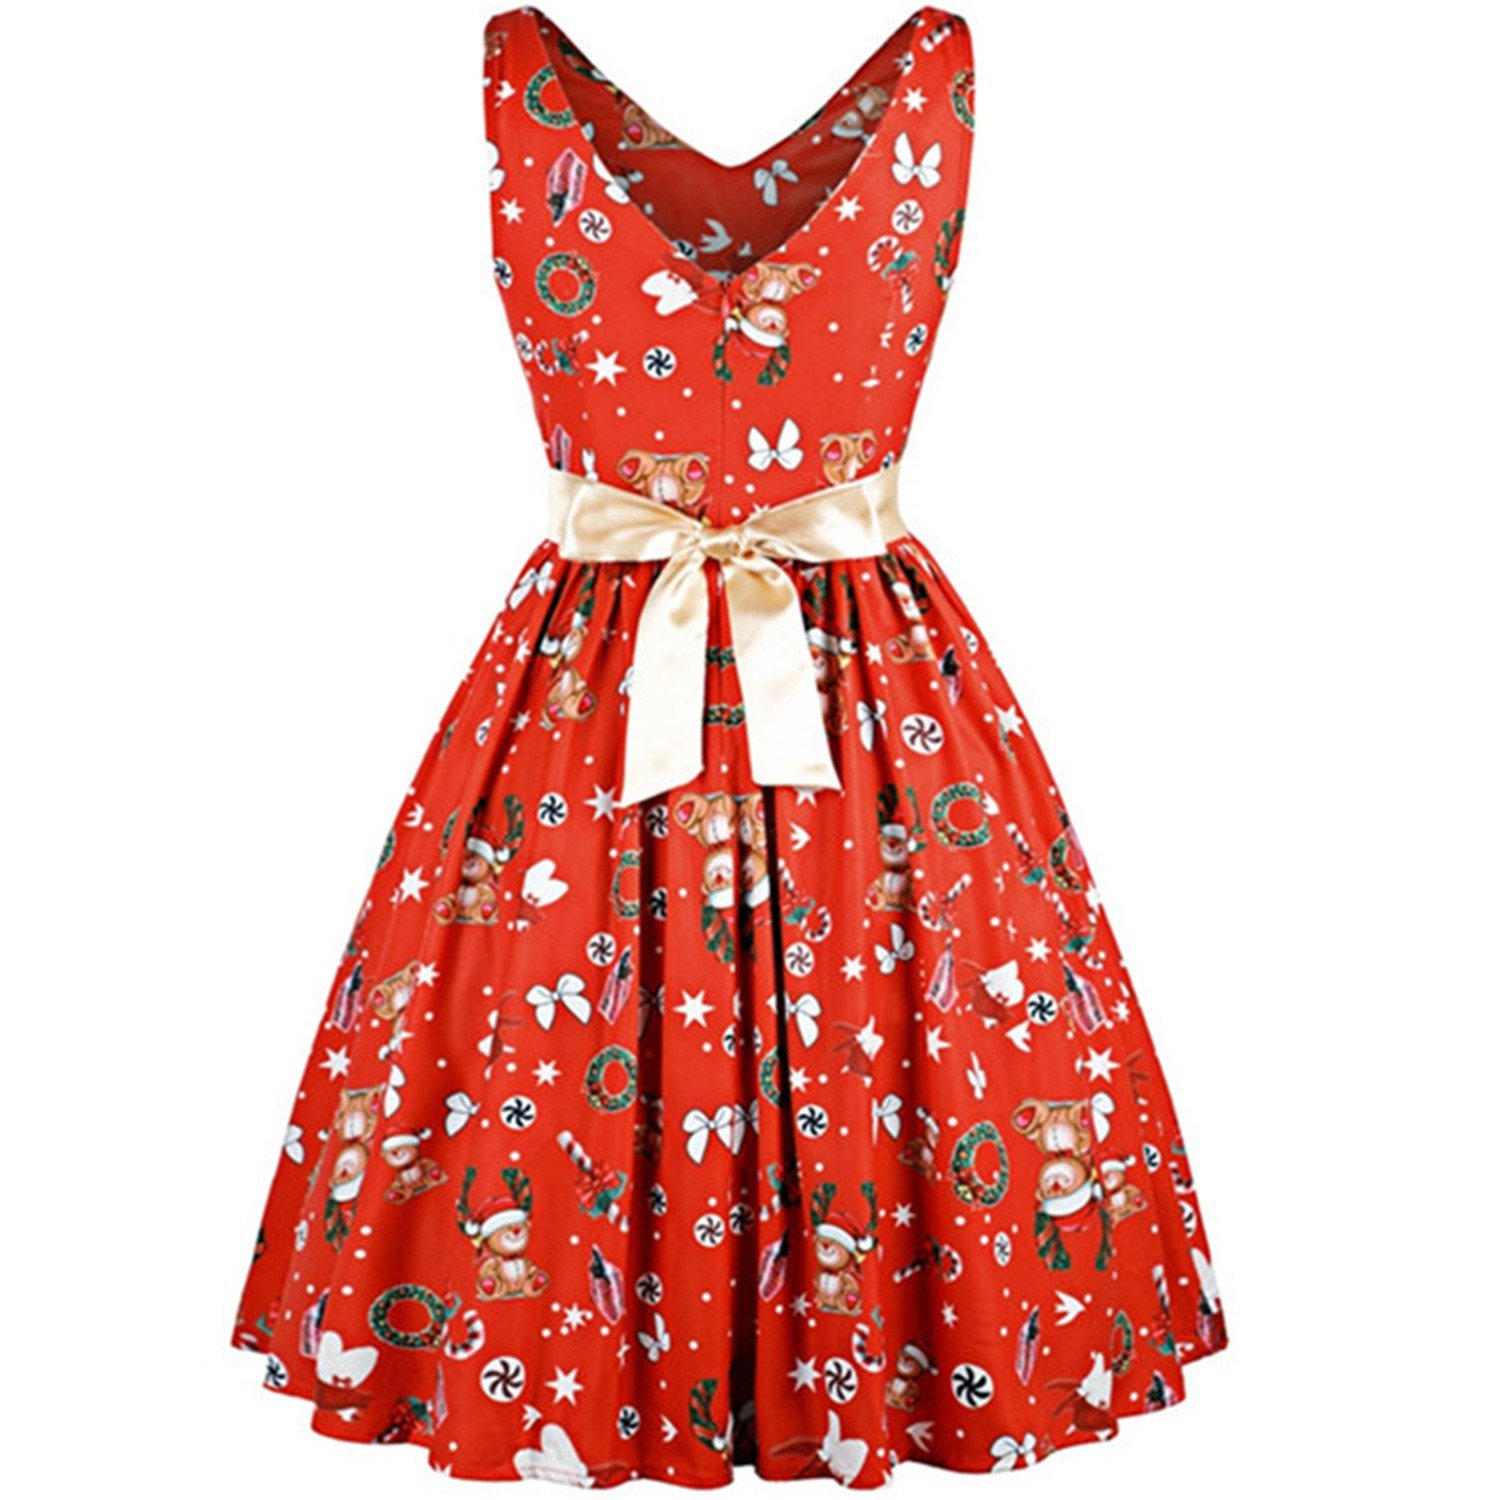 NINGJING Women Vintage Christmas Dress 1950s Party Dresses Female Retro Swing Vestidos at Amazon Womens Clothing store: